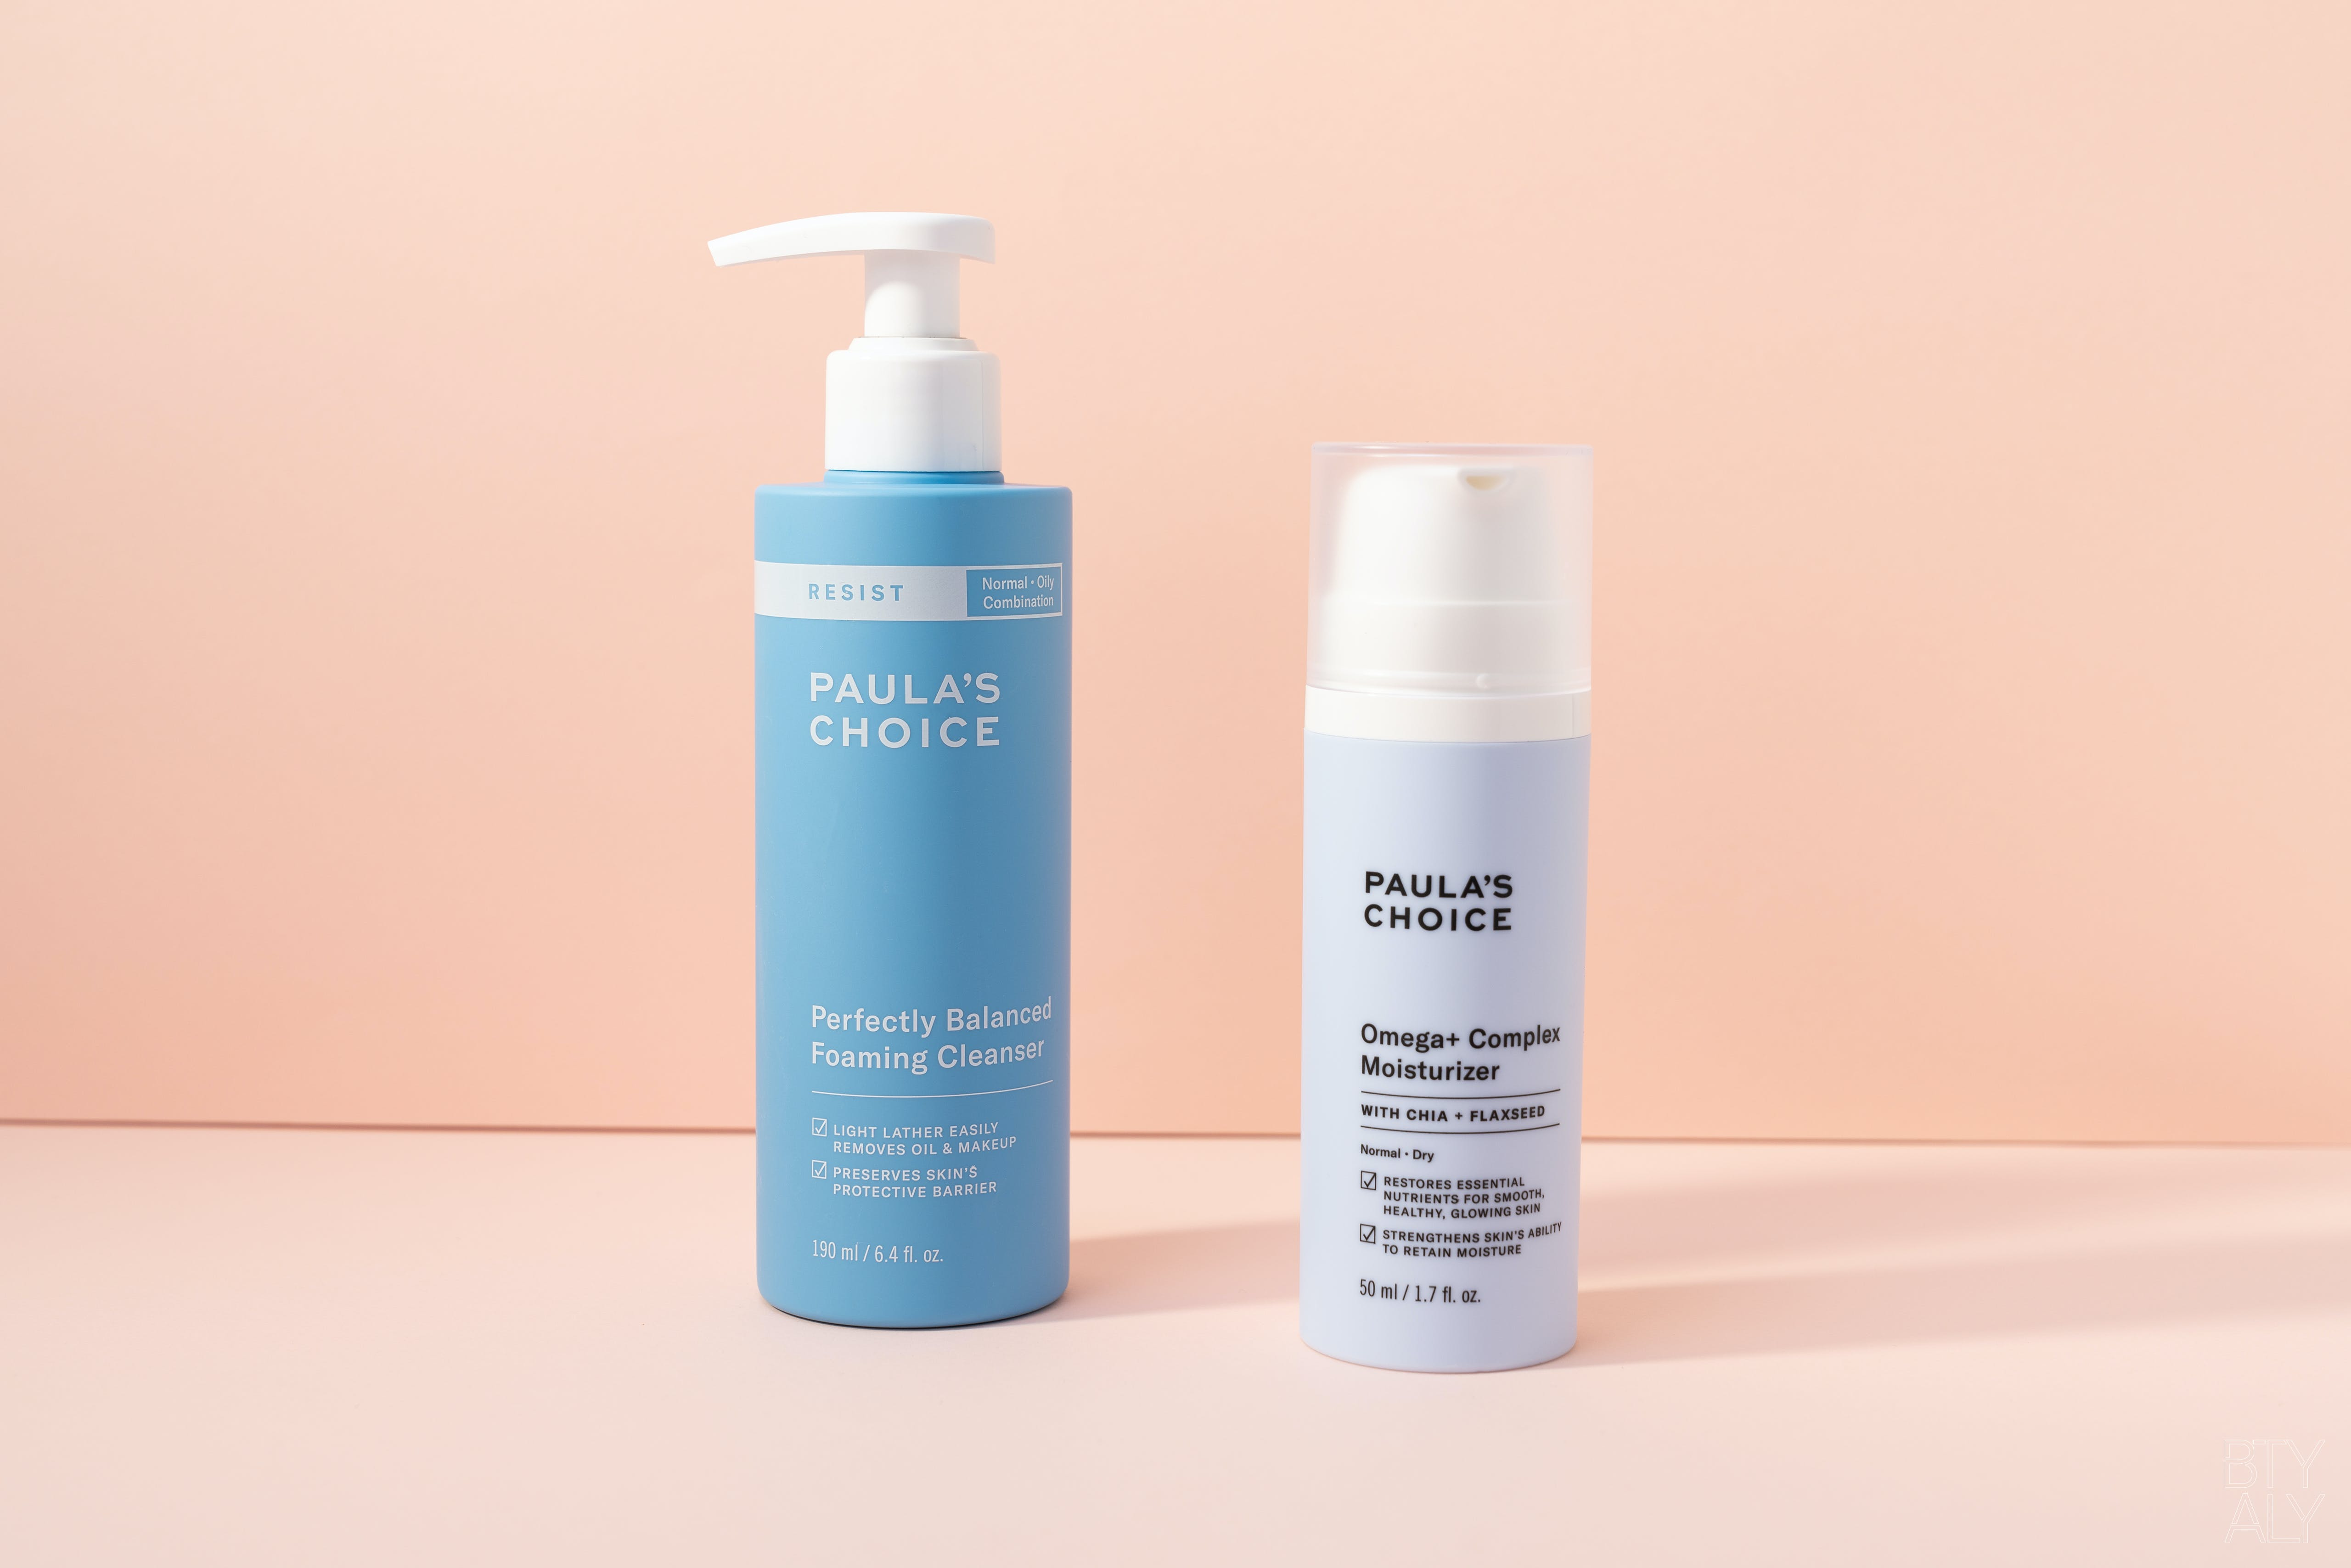 Paula's Choice Perfectly Balanced Foaming Cleanser, Omega + Complex Moisturizer